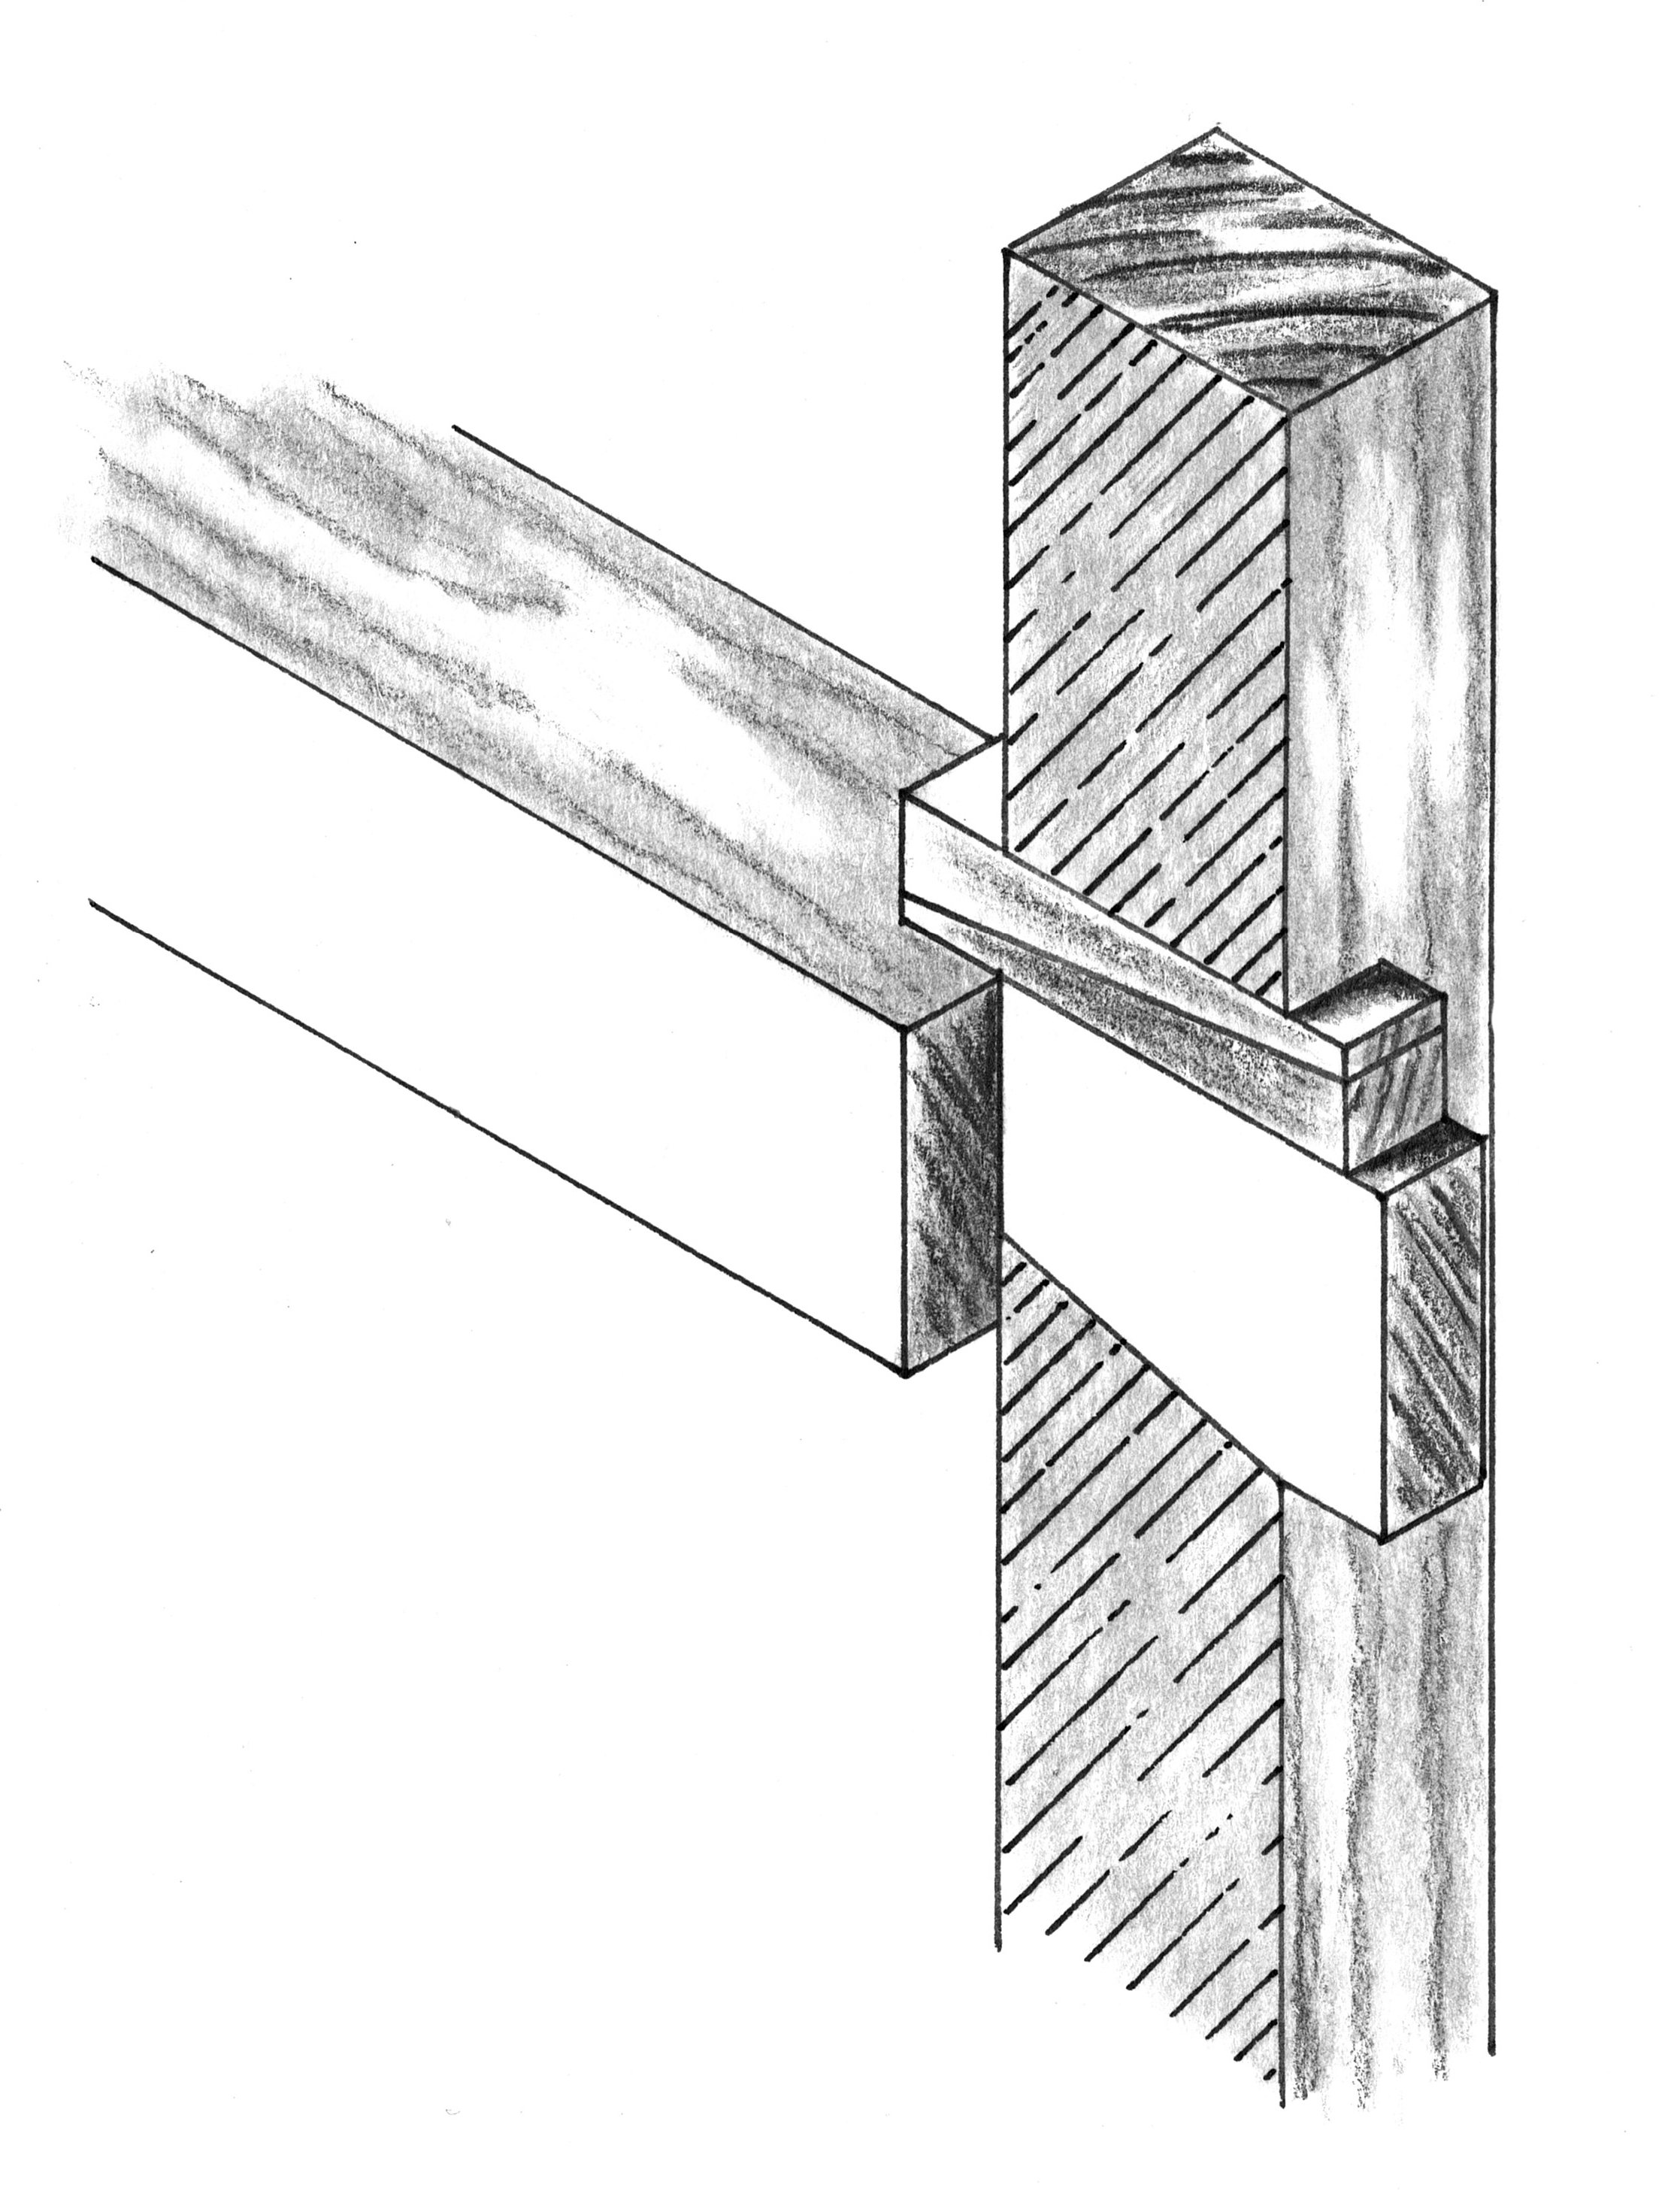 Blind Dovetail Thru Mortise And Tenon